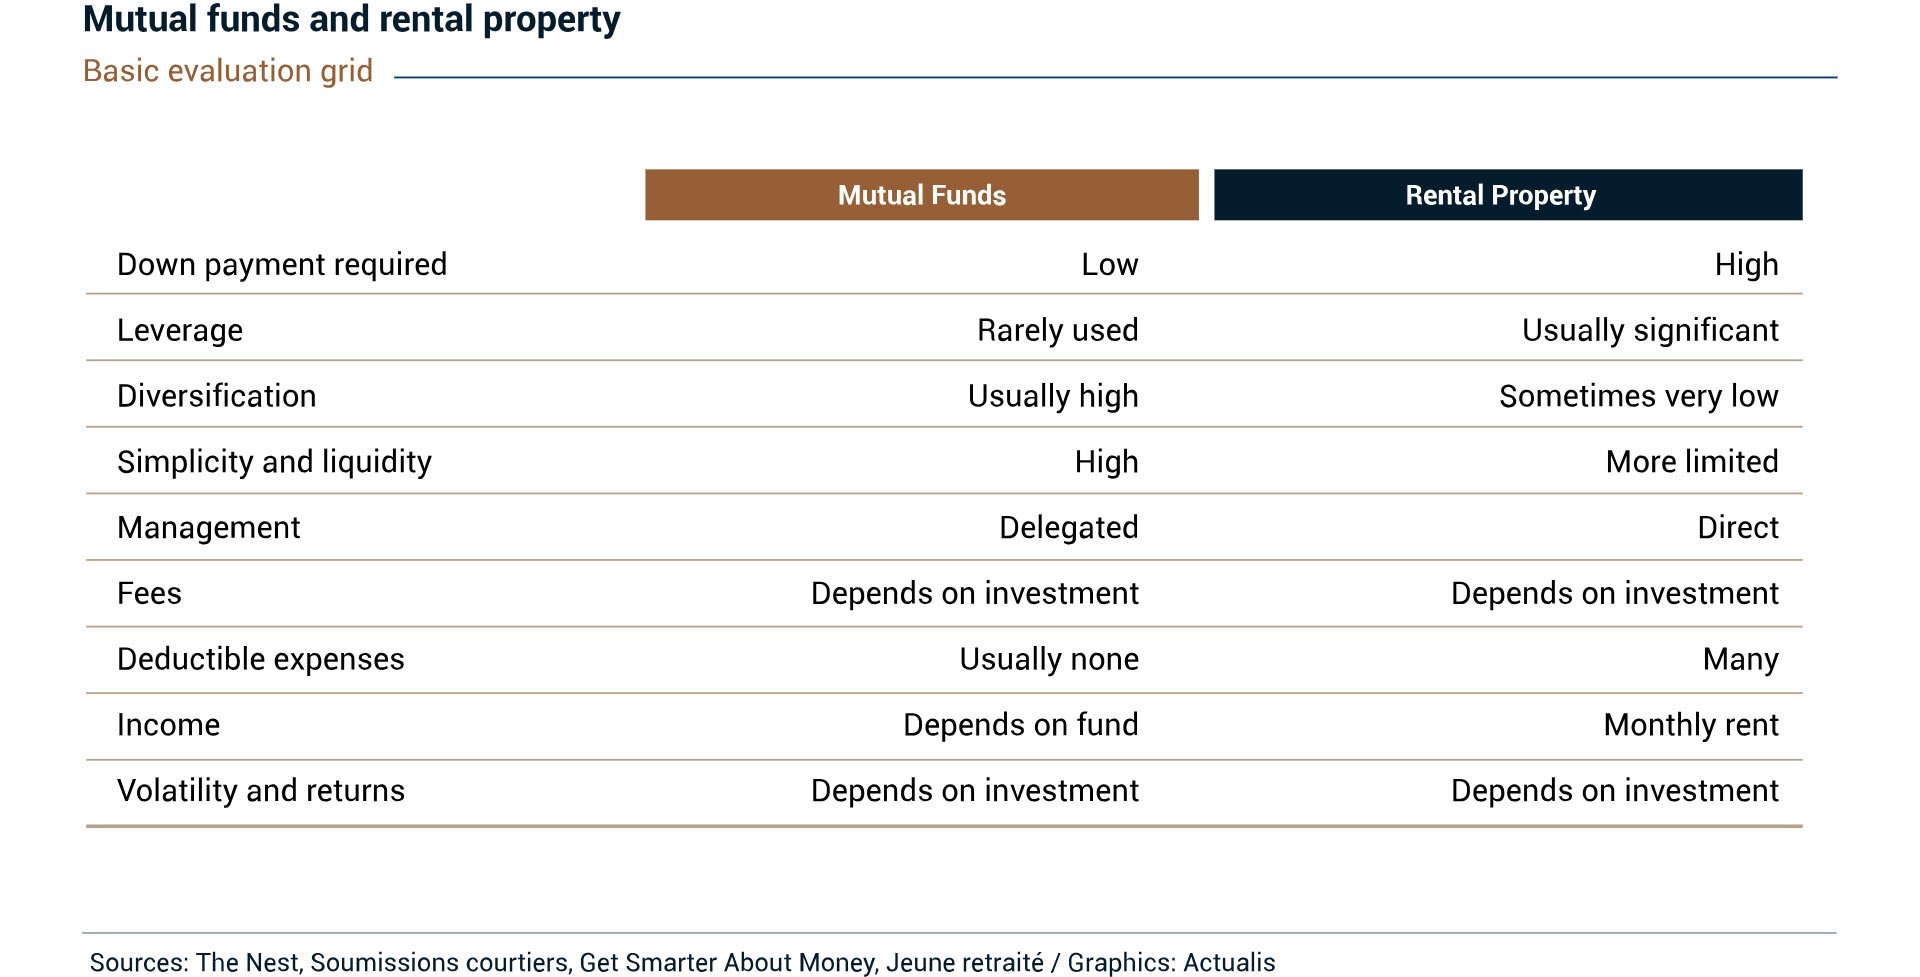 Table comparing a mutual fund investment with a rental property investment. The table shows the differences in terms of the down payment required, leverage, diversification, simplicity, liquidity, management and deductible expenses. However, in terms of fees, income, volatility and returns, it shows that the differences depend on the specific investment made.